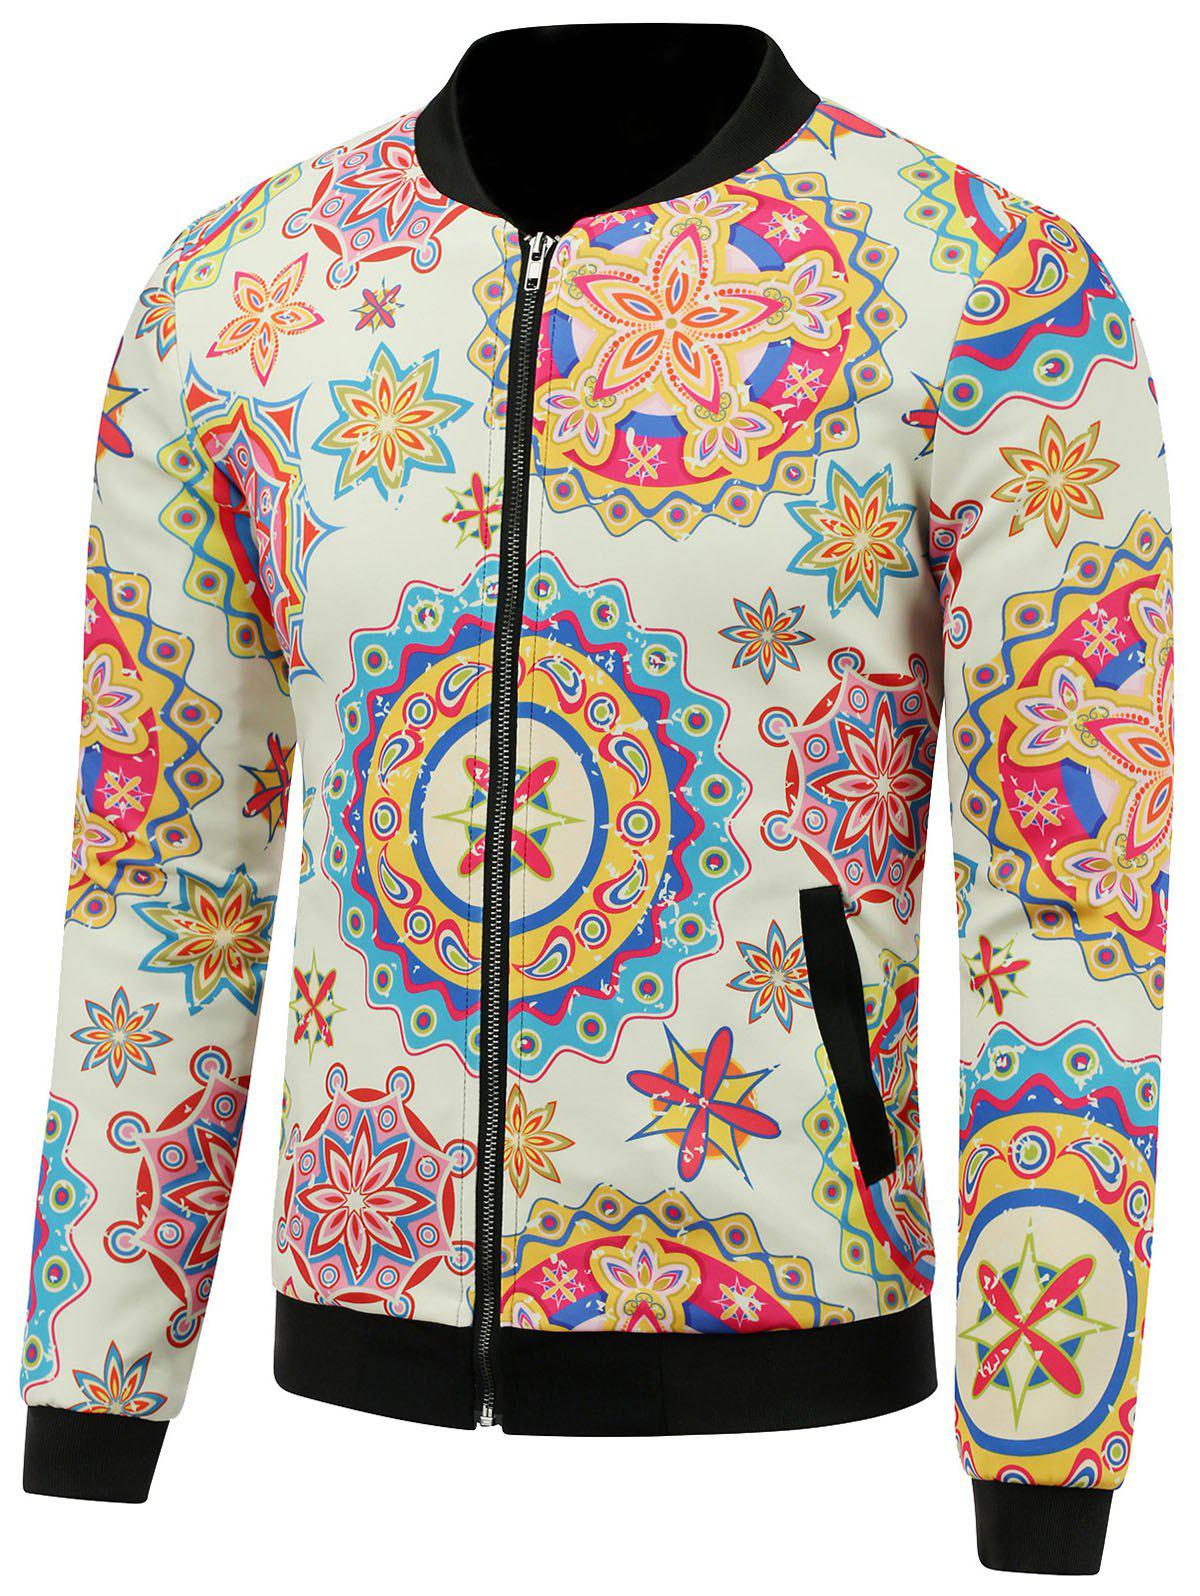 39eca11876a0f Unique Stand Collar 3D Colorful Palace Florals Print Zip Up Padded Jacket